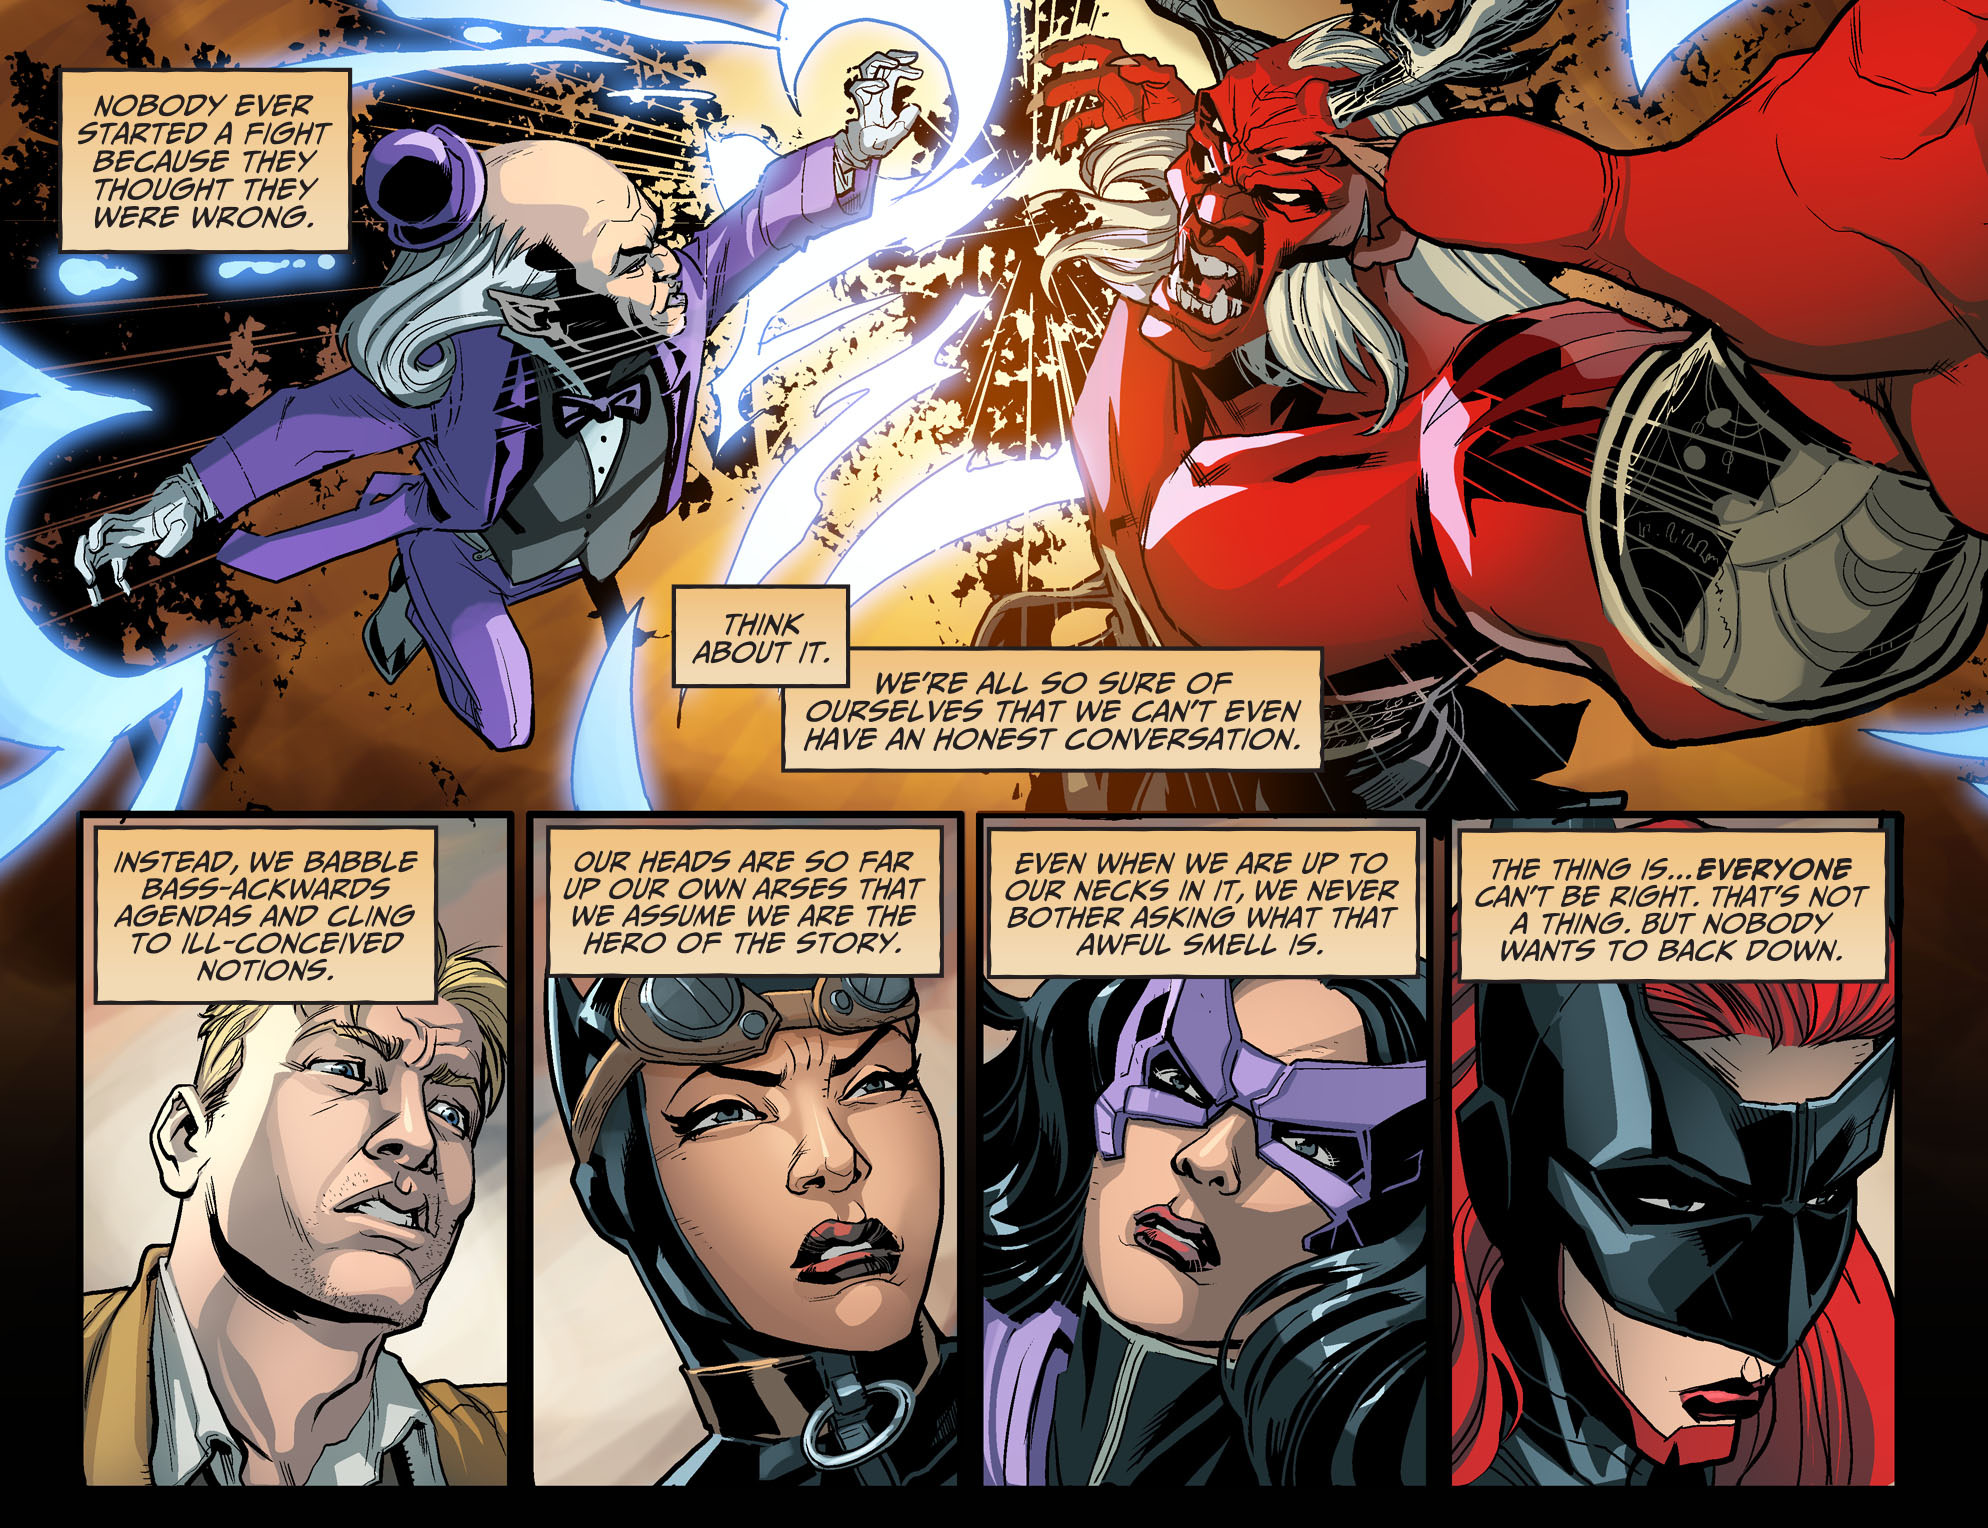 Injustice Gods Among Us Year Three Issue 20 Read Injustice Gods Among Us Year Three Issue 20 Comic Online In High Quality Read Full Comic Online For Free Read Comics